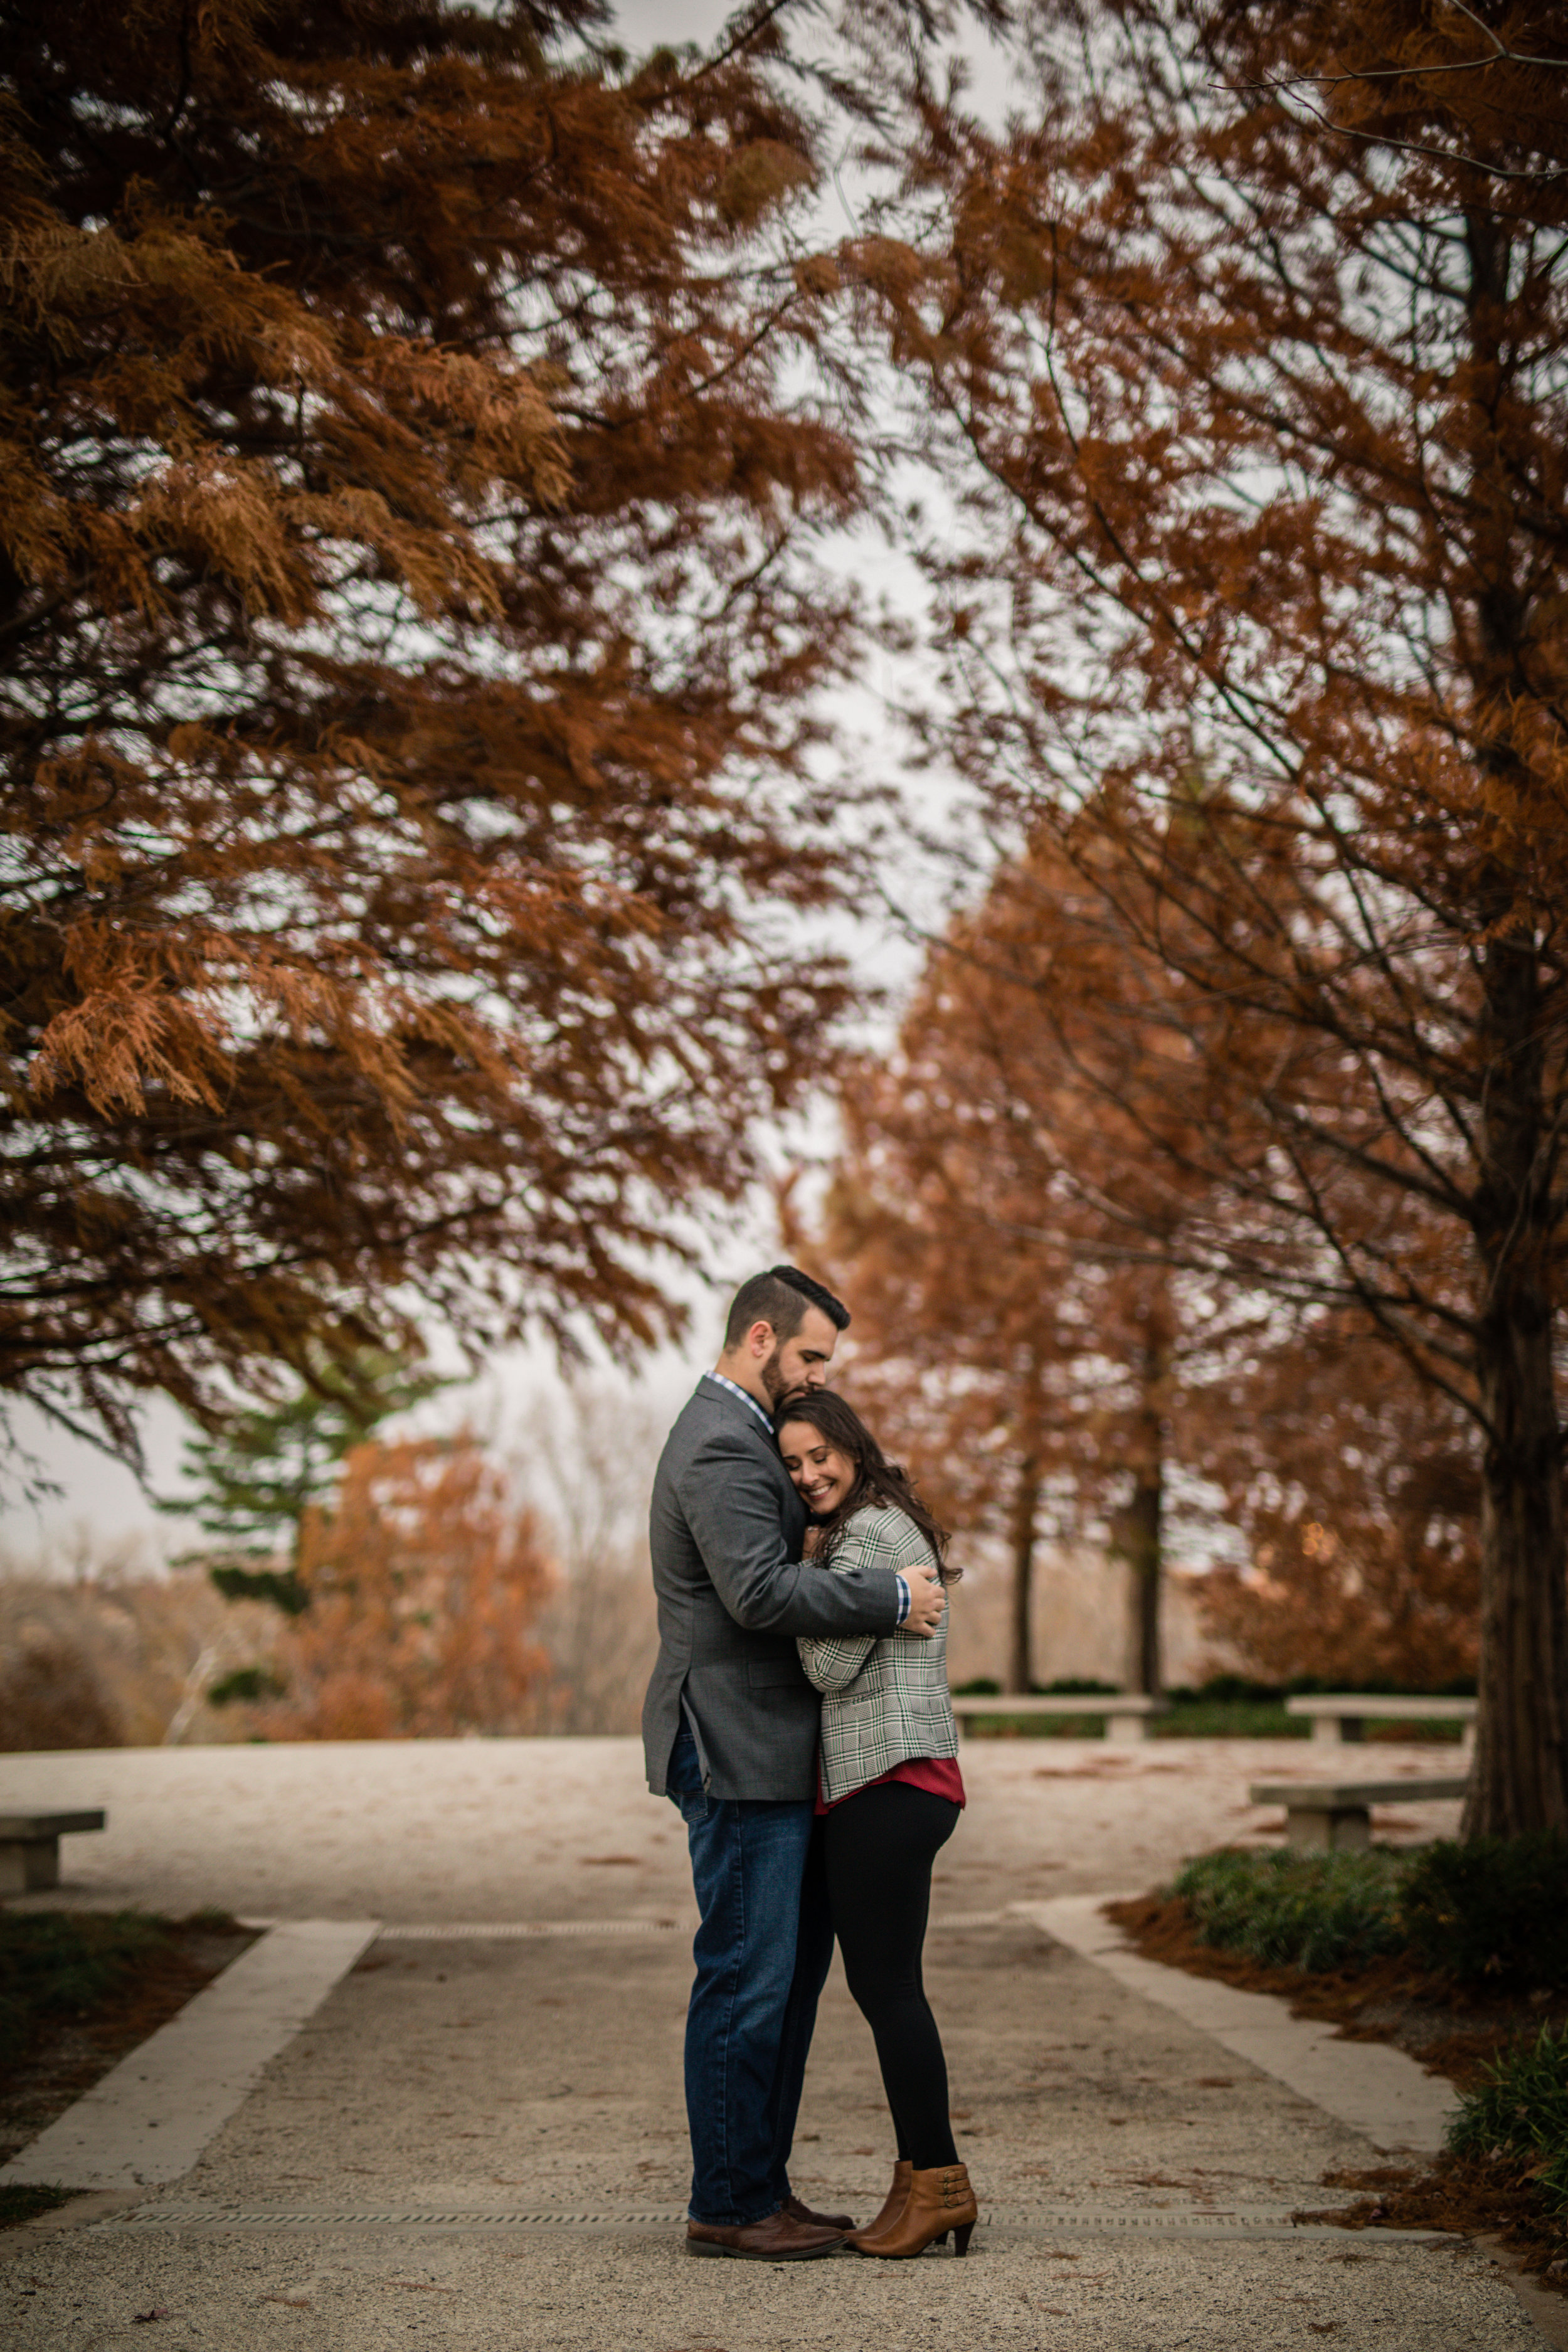 Waltrip Lemasters engagement portraits stl forest park-lewis and oak (6 of 8).jpg